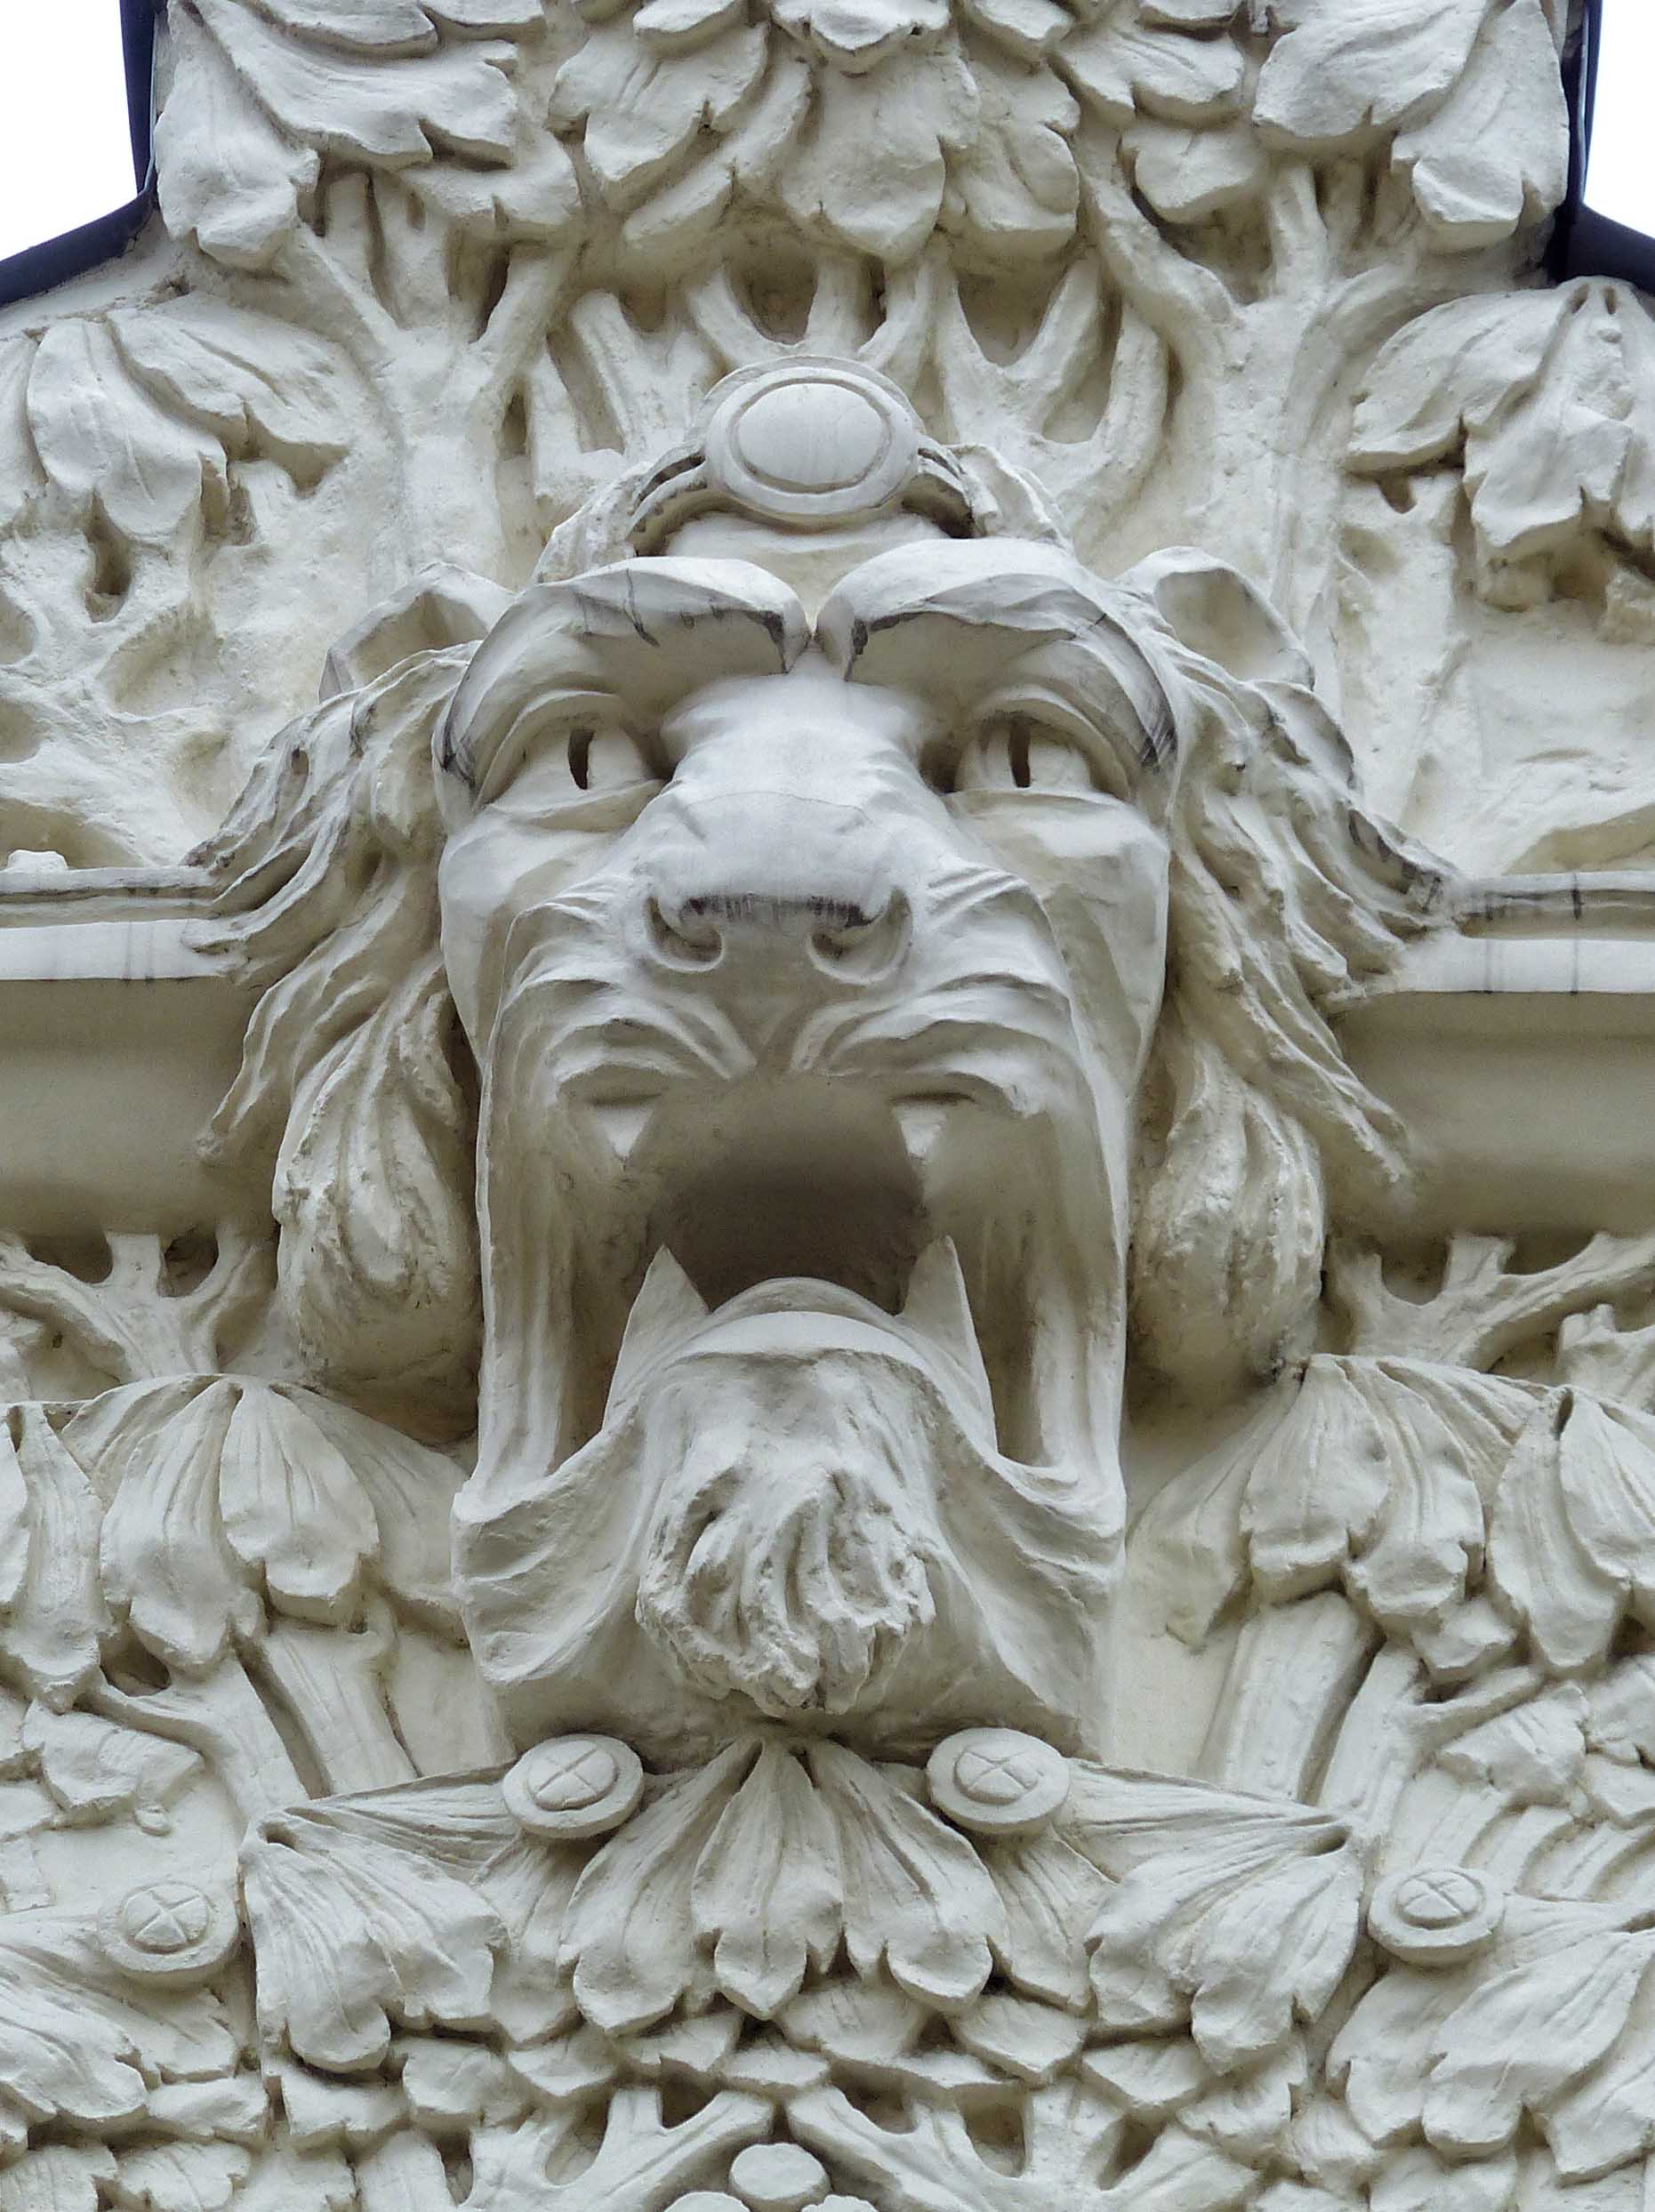 Fierce lion face carved in white stone